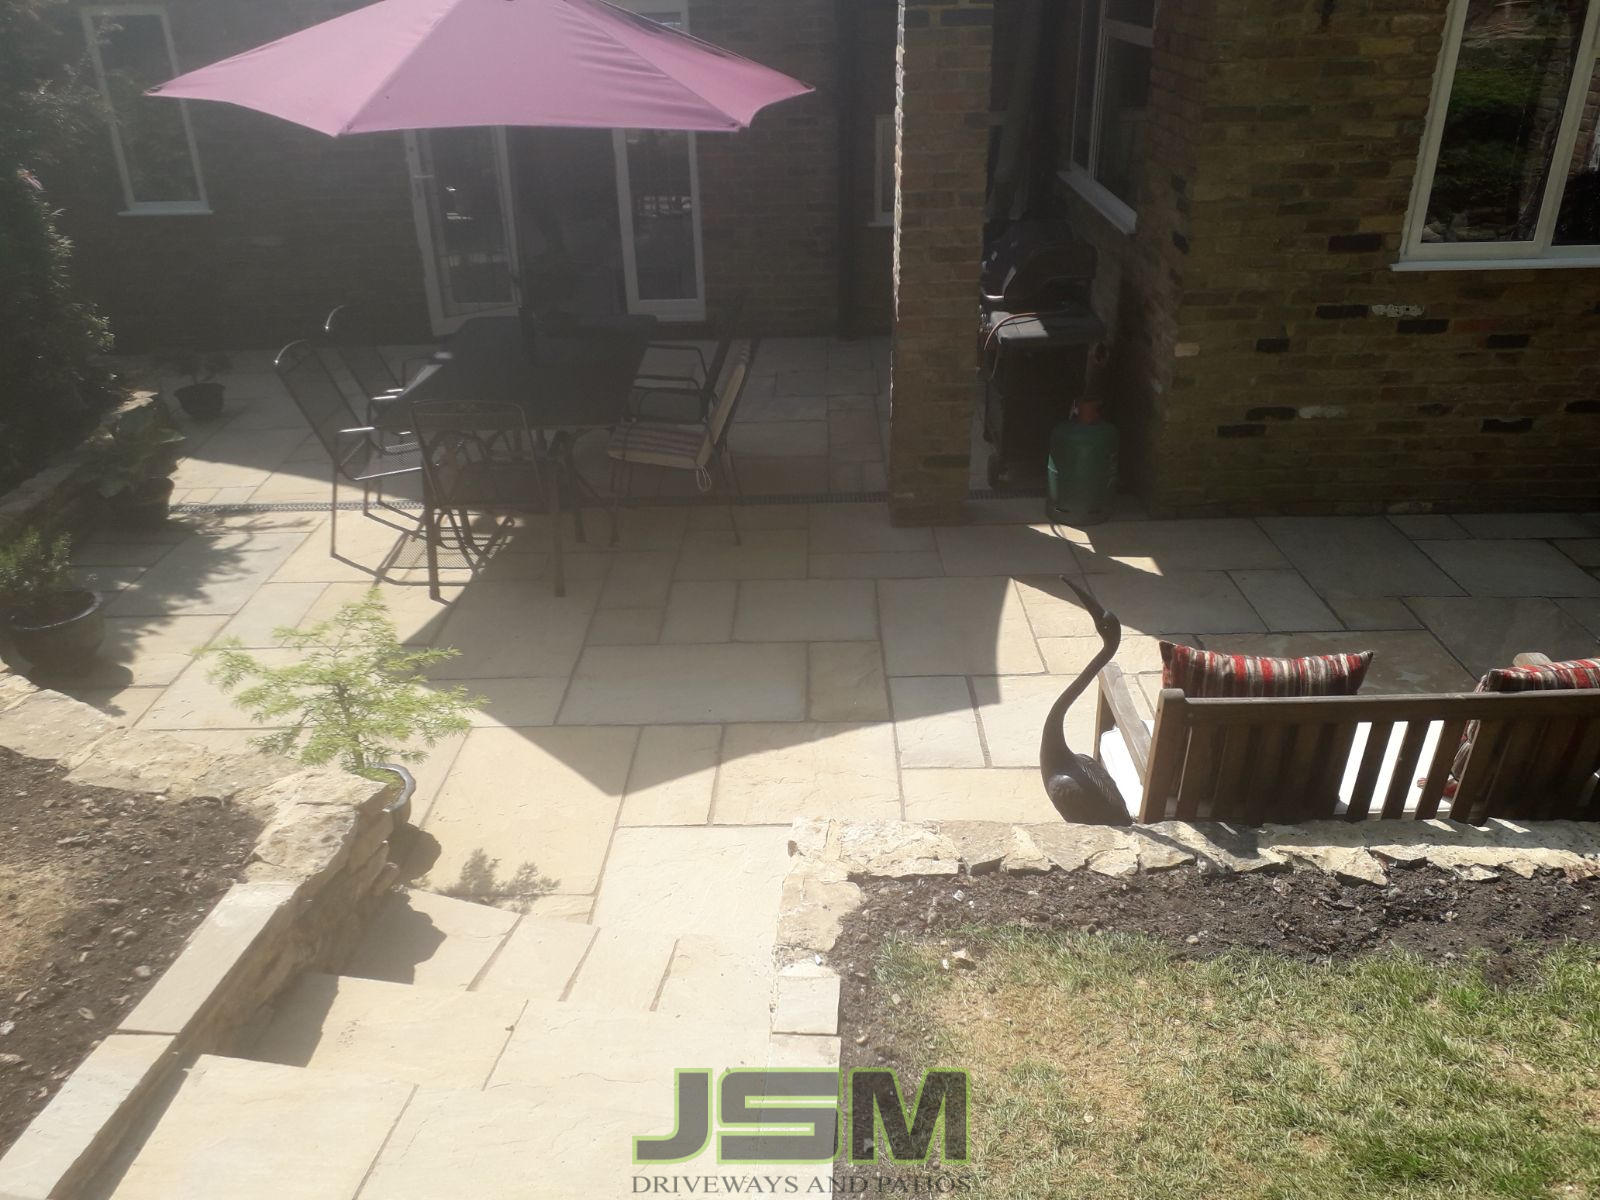 Garden Paving Company in Willen, Milton Keynes